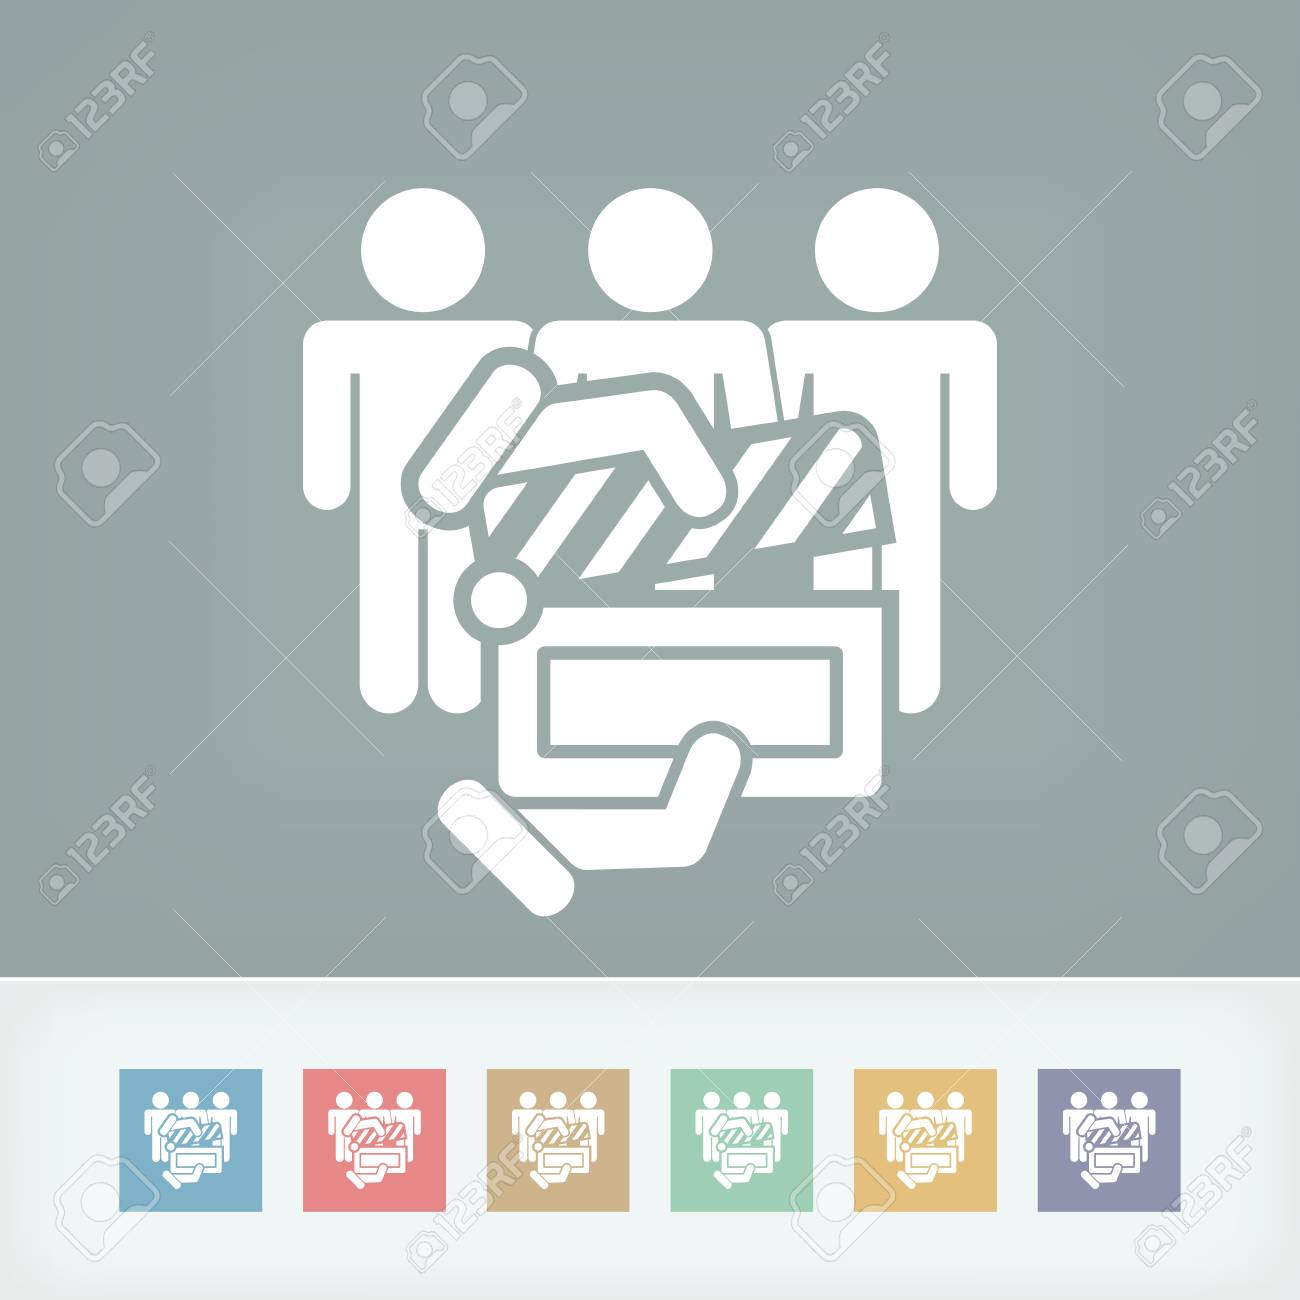 Clapboard actors icon Stock Vector - 27149356